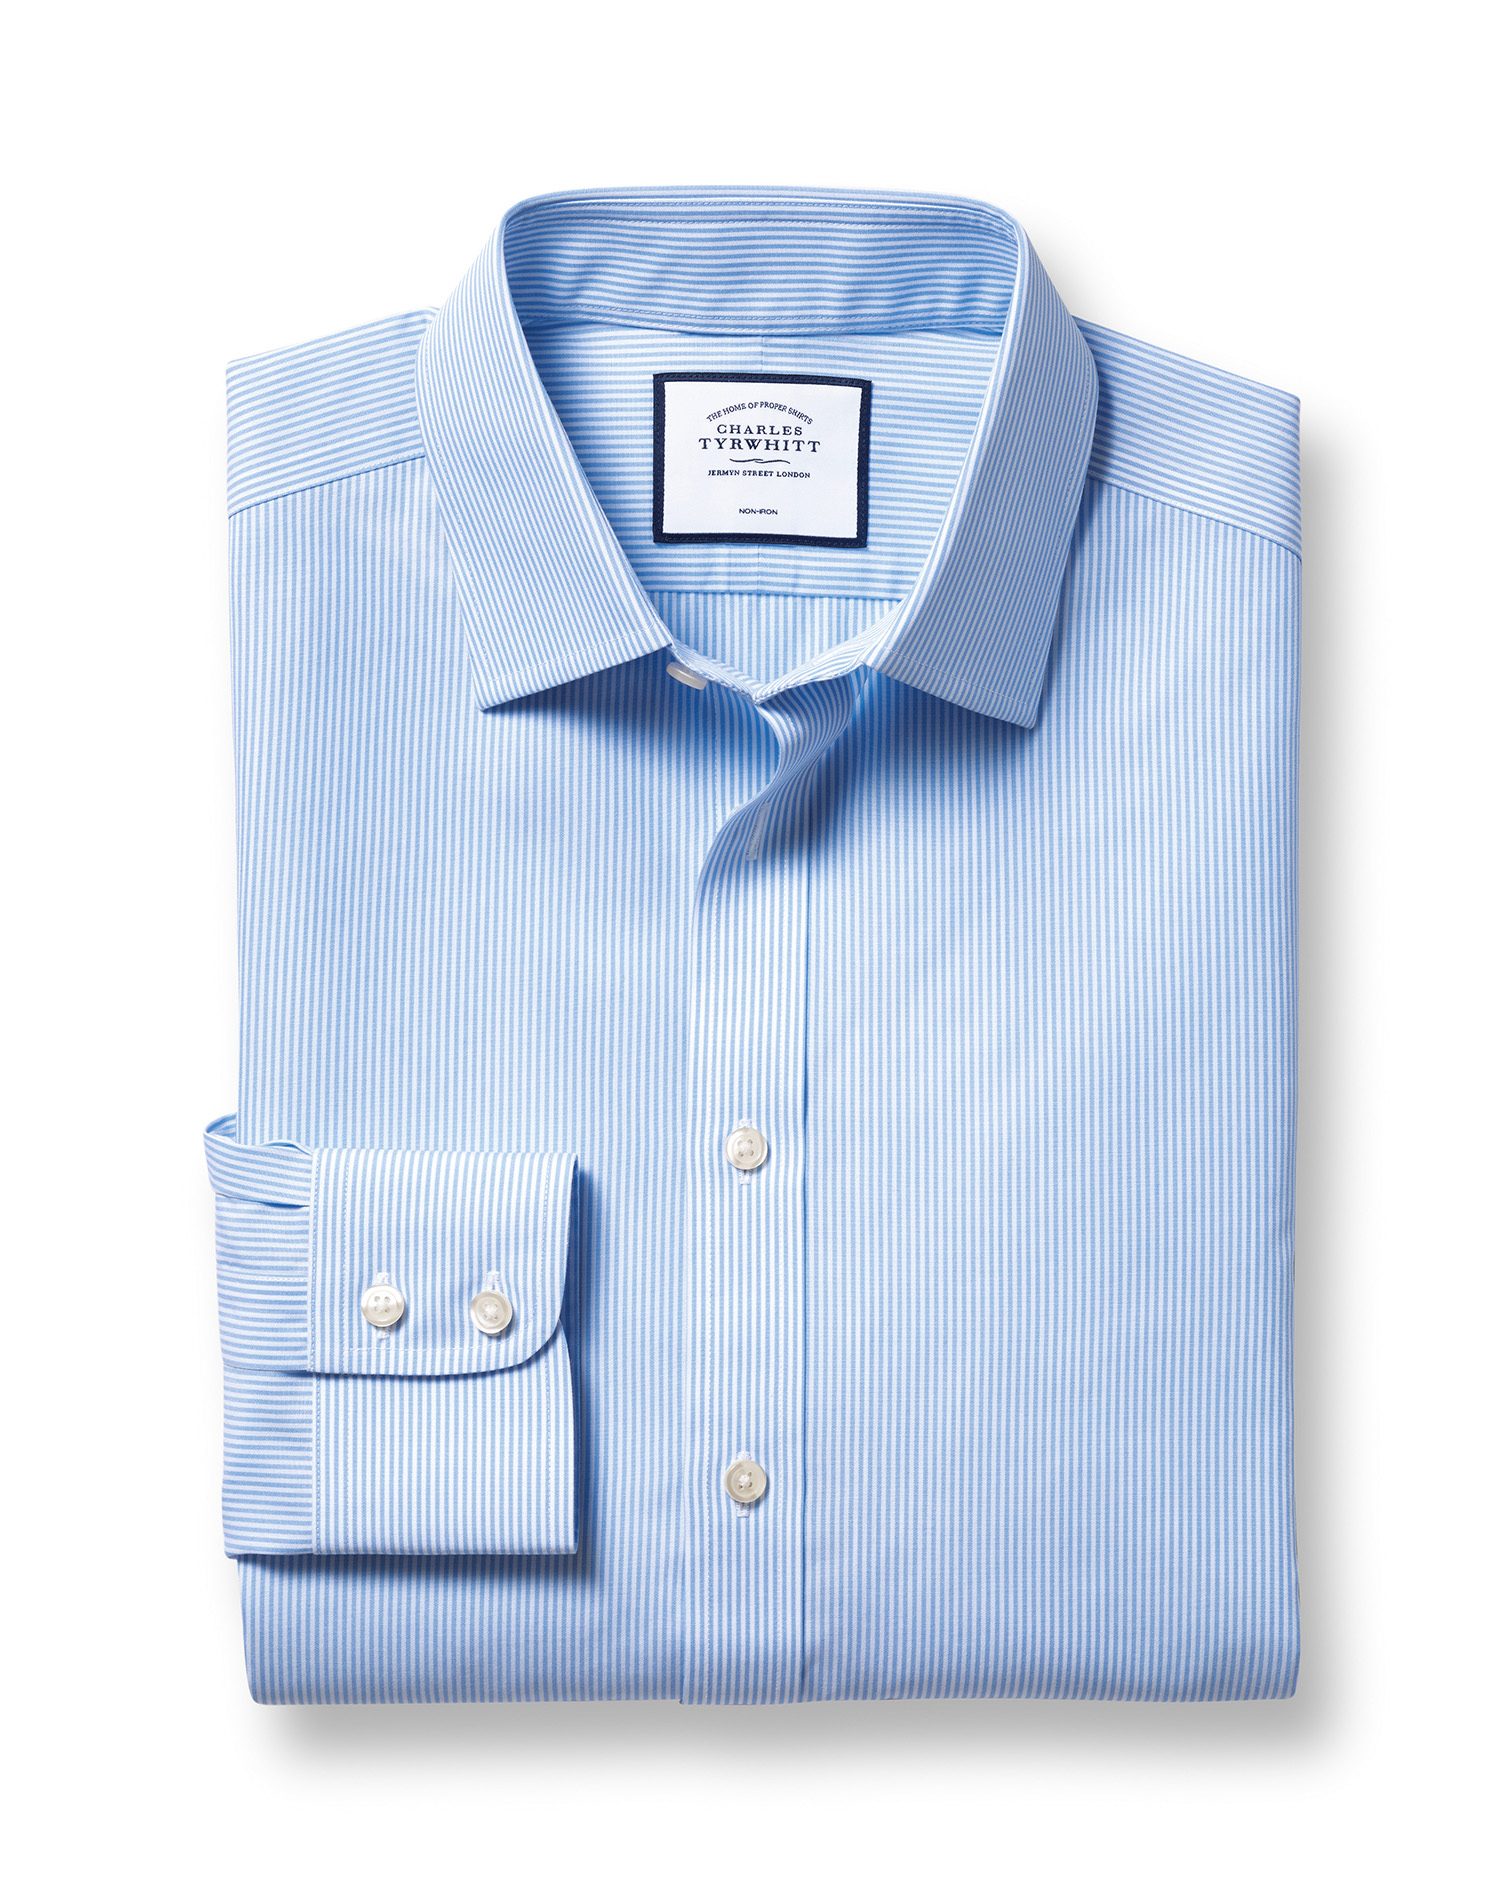 Classic Fit Non-Iron Bengal Stripe Sky Blue Cotton Formal Shirt Single Cuff Size 16.5/38 by Charles